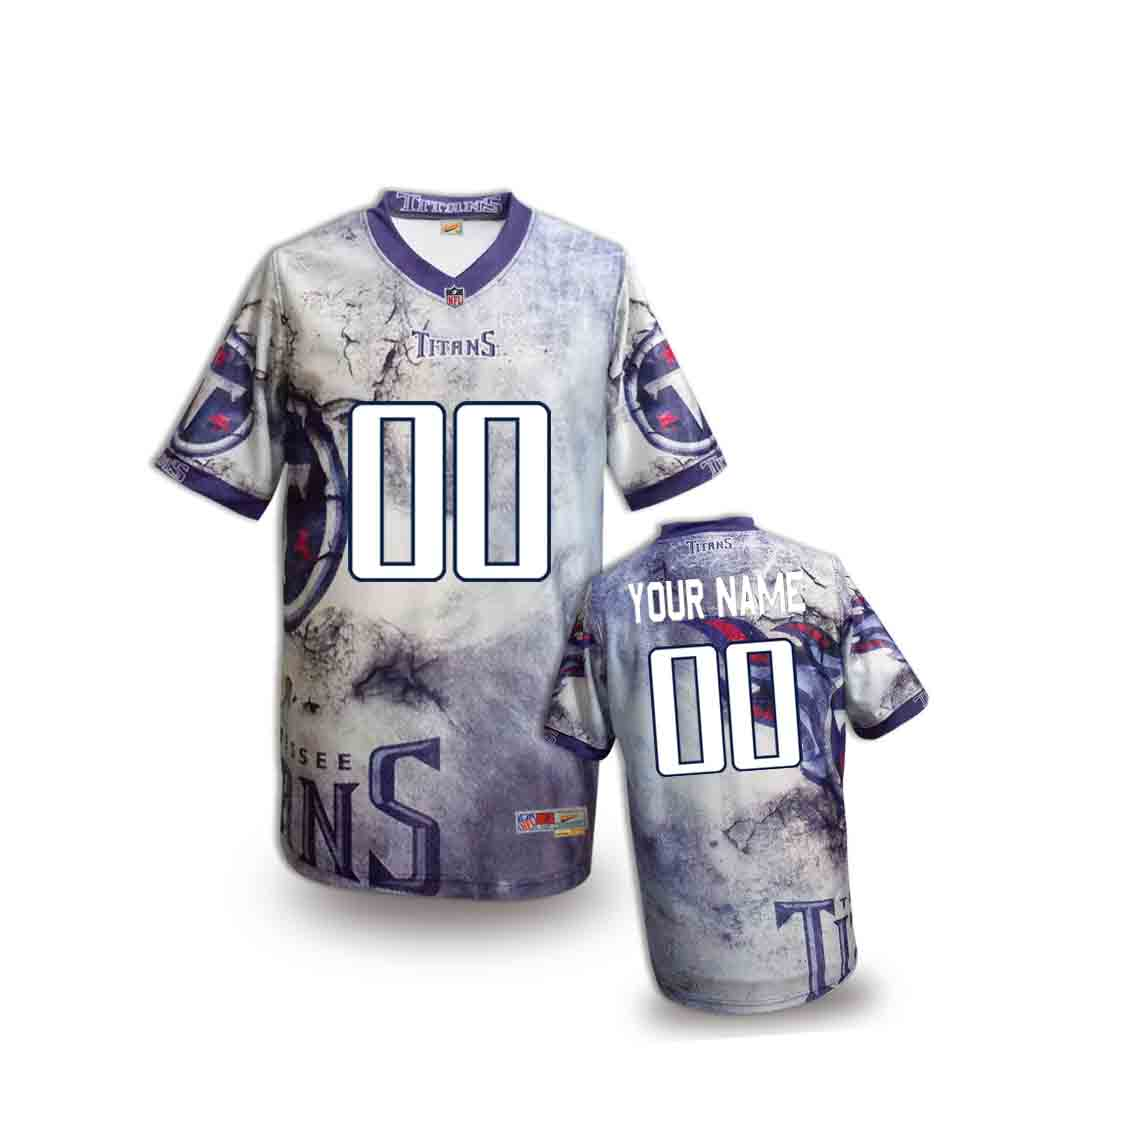 Nike Titans Customized Fashion Stitched Youth Jerseys03